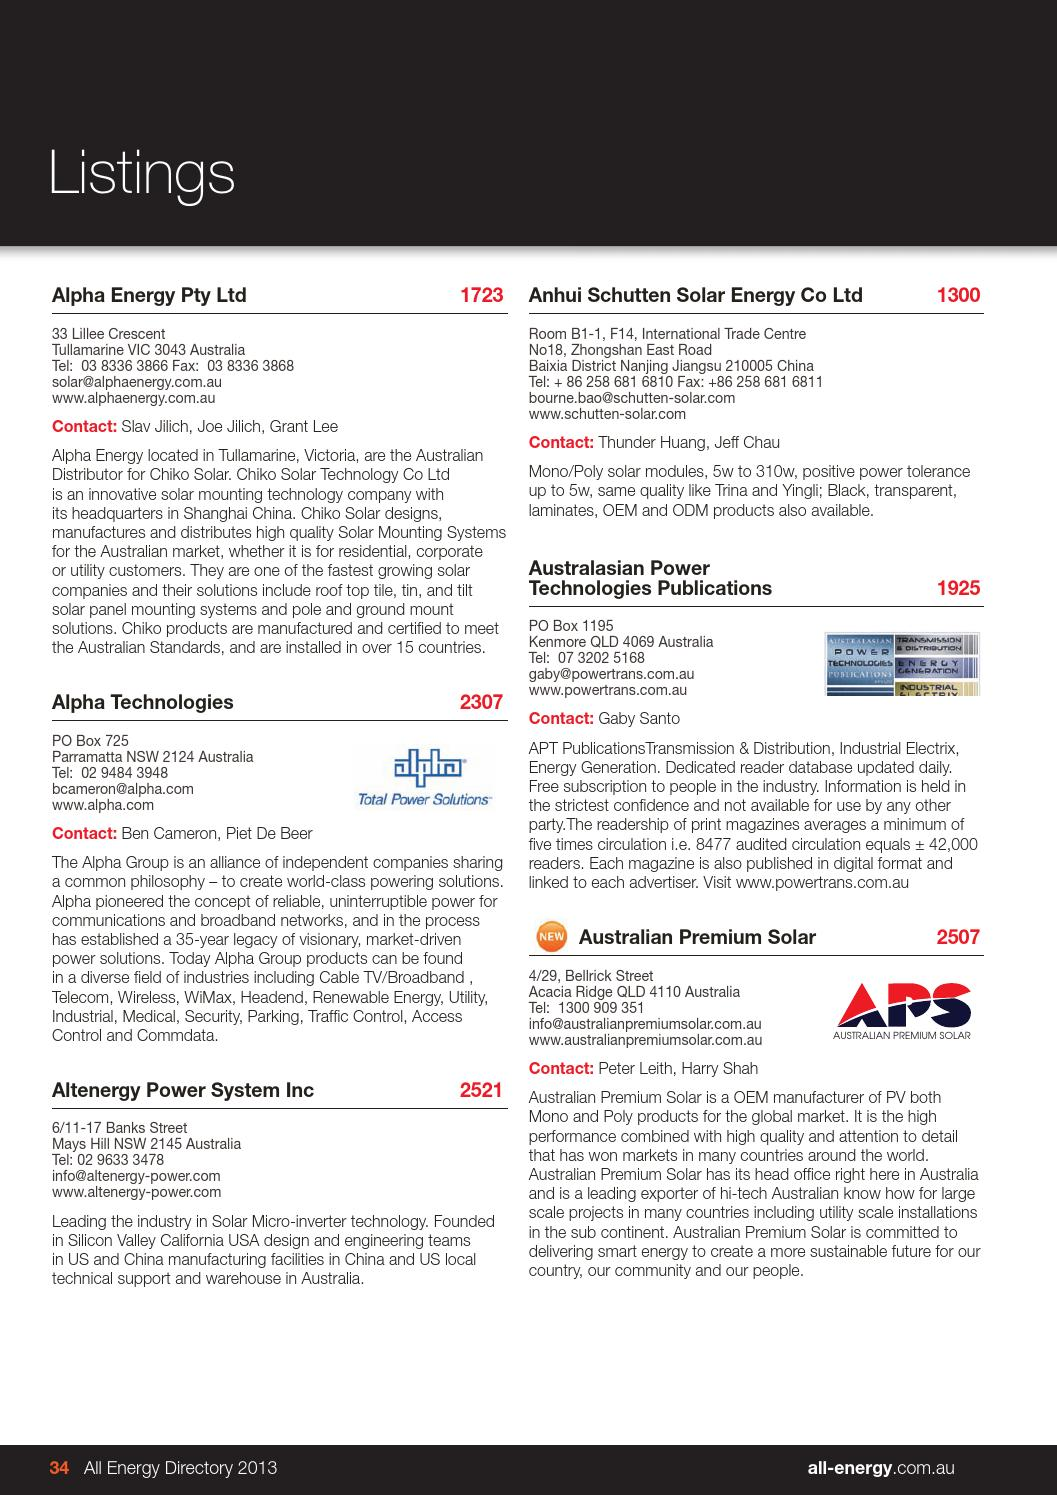 All Energy Australia 2013 Exhibition Directory By Reed